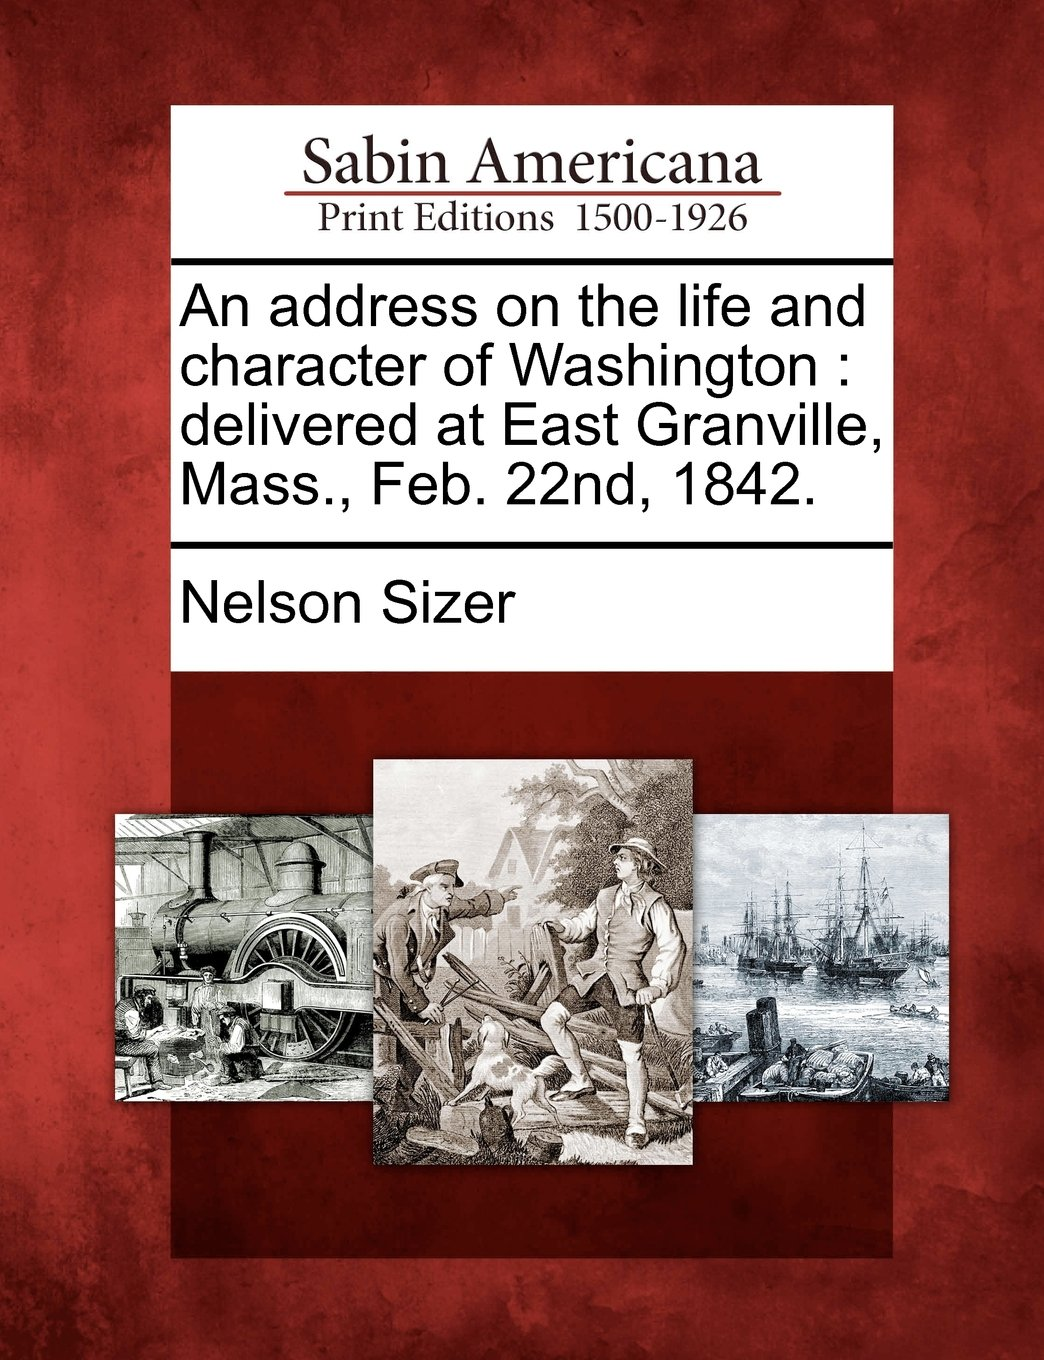 Read Online An address on the life and character of Washington: delivered at East Granville, Mass., Feb. 22nd, 1842. PDF